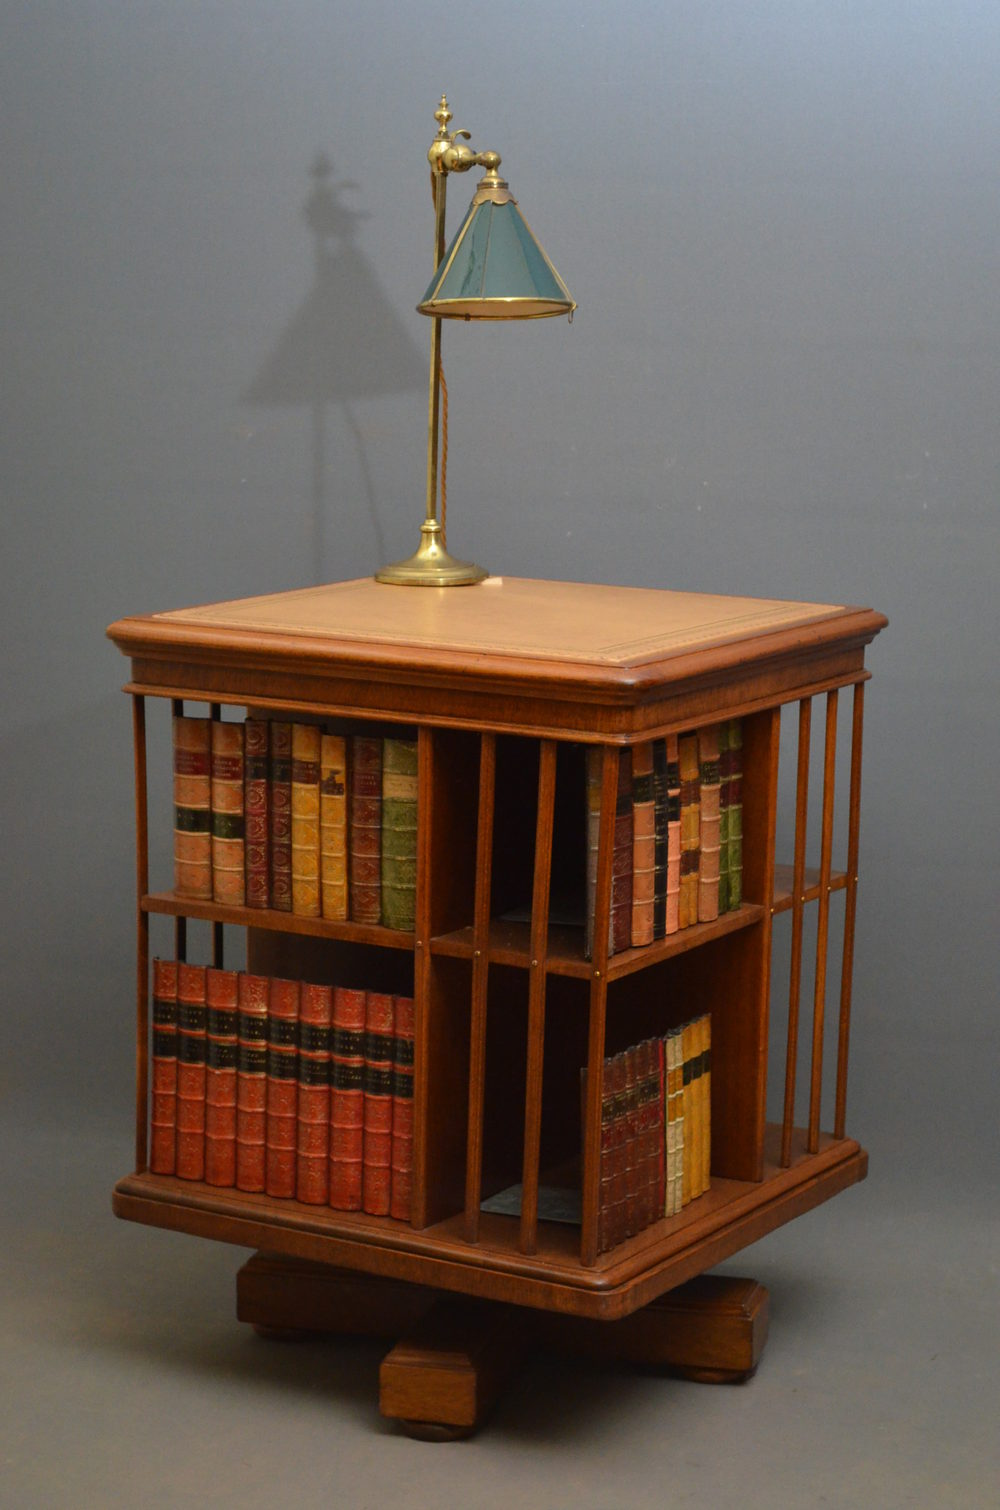 hesketh parcel regency rosewood revolving neston easton bookcase pin lord gilt from s